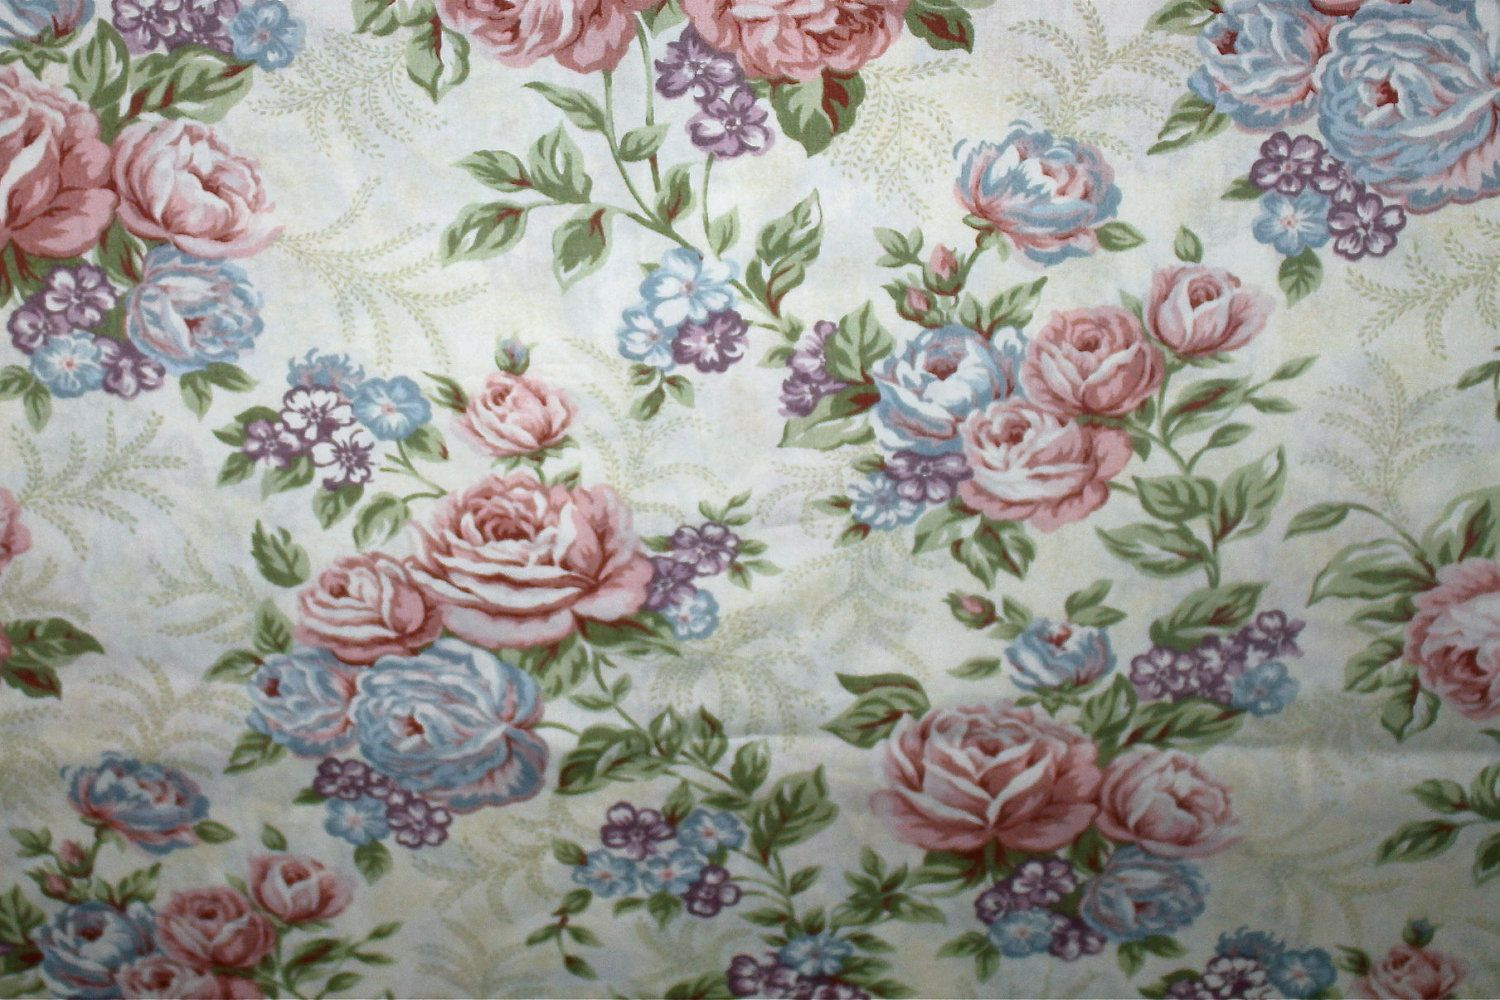 Classic: Cotton Fabric - Classic Cottons - Shabby Green Floral Print - 1 yard  OOP. $6.50, via Etsy.